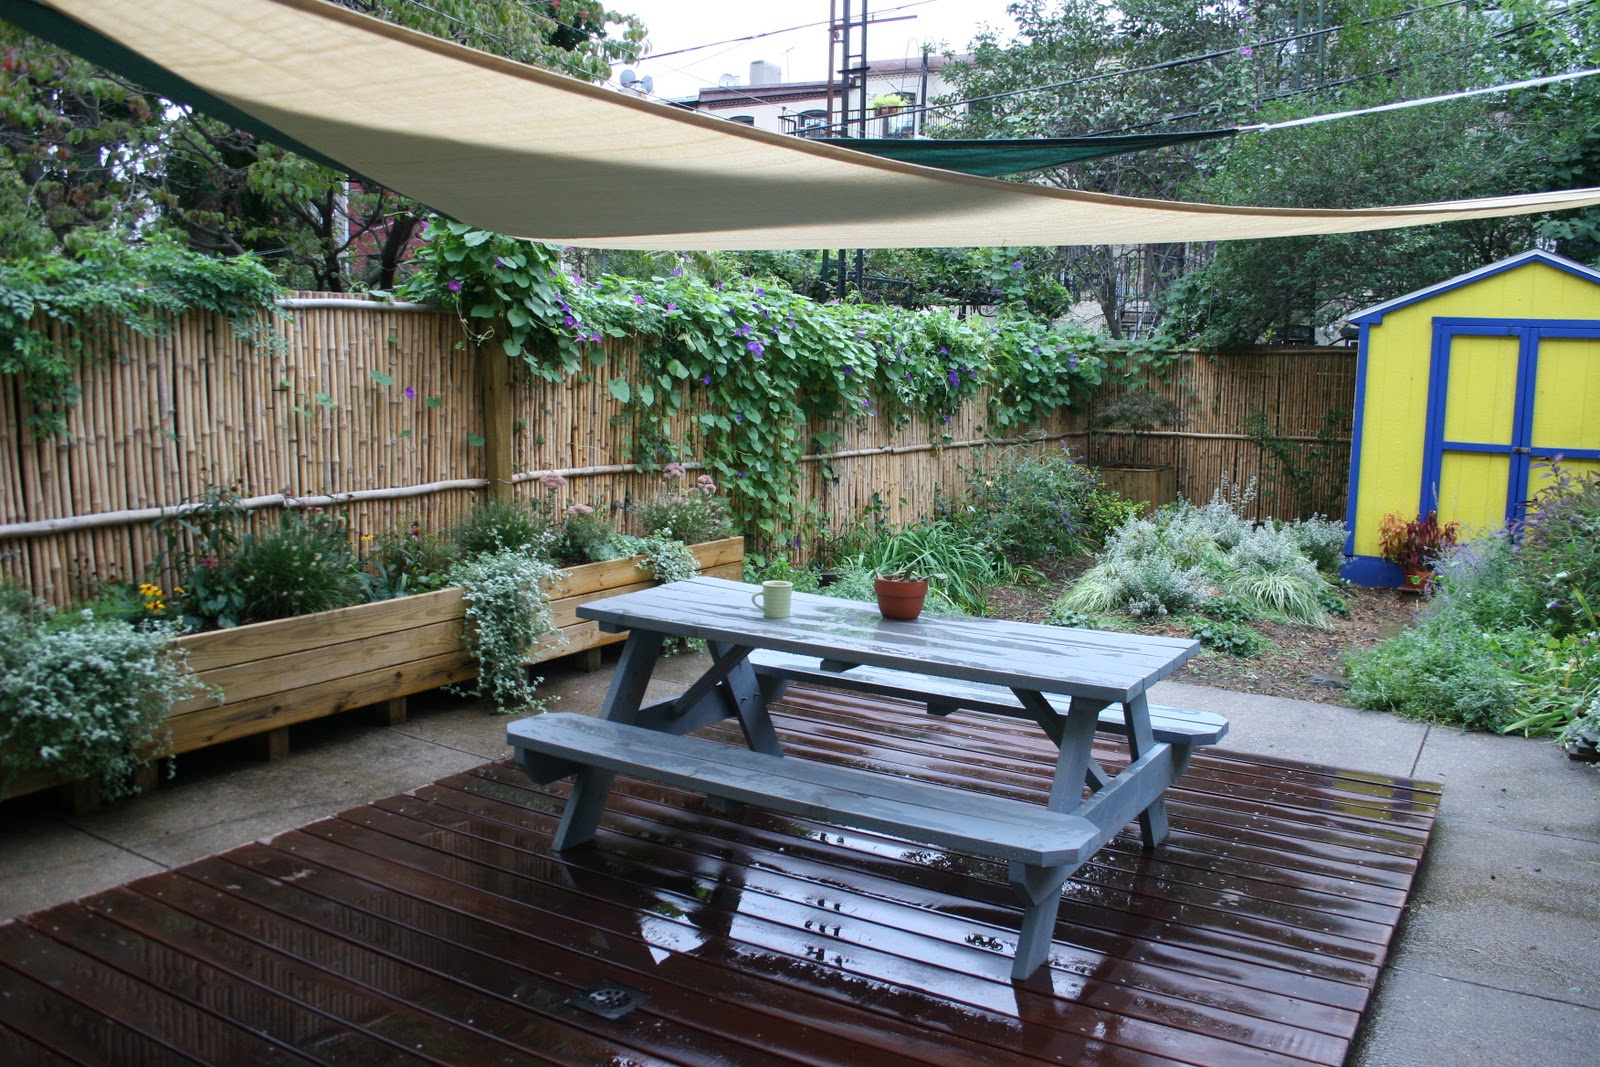 Greenzone landscape design brooklyn garden for Garden design brooklyn